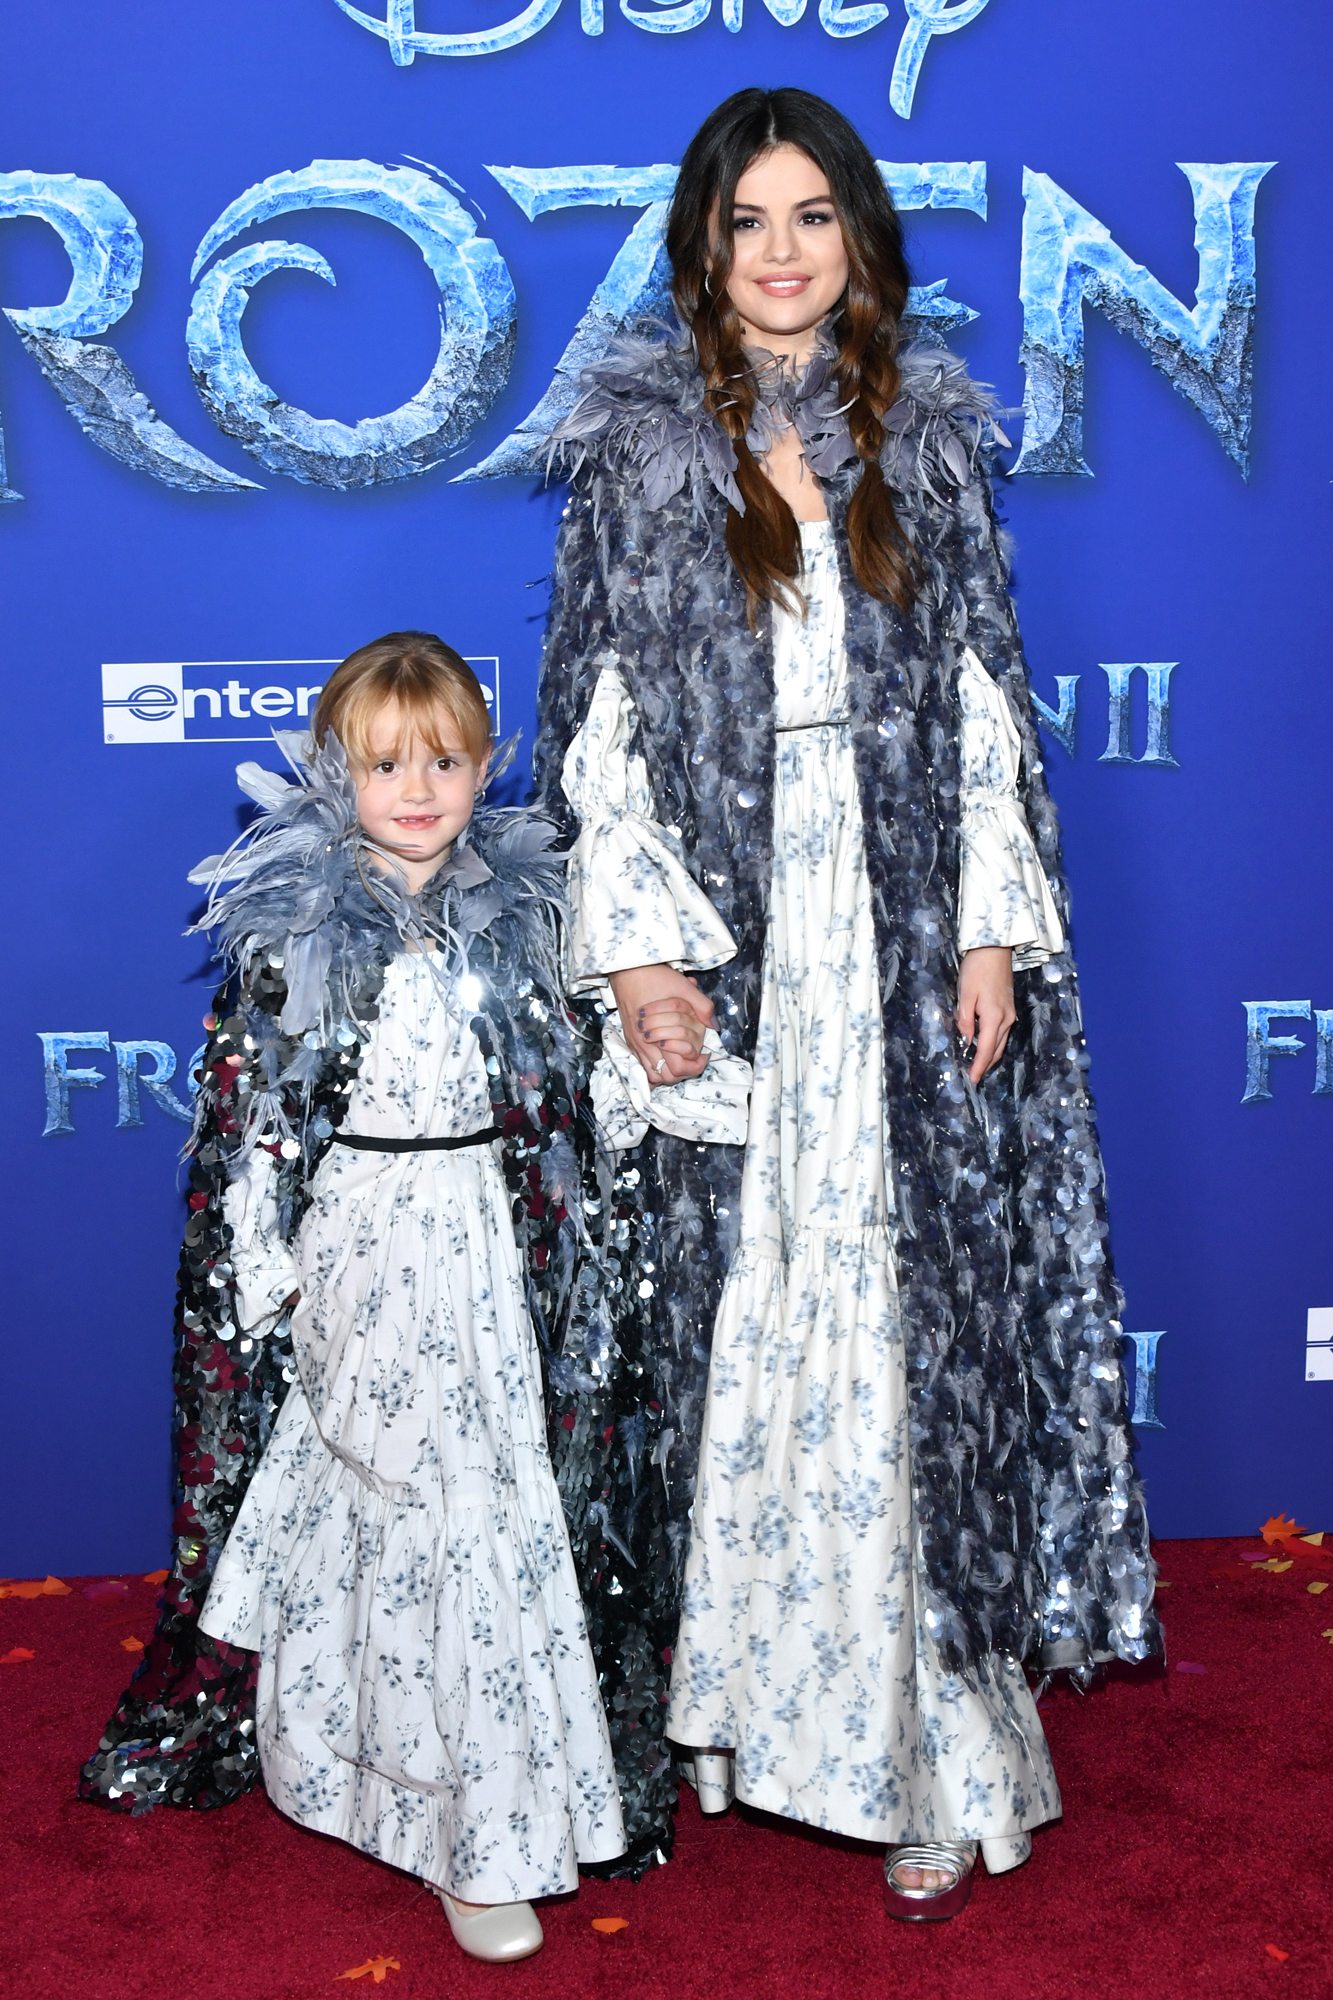 """Gracie Teefey and Selena Gomez attend the premiere of Disney's """"Frozen 2"""""""